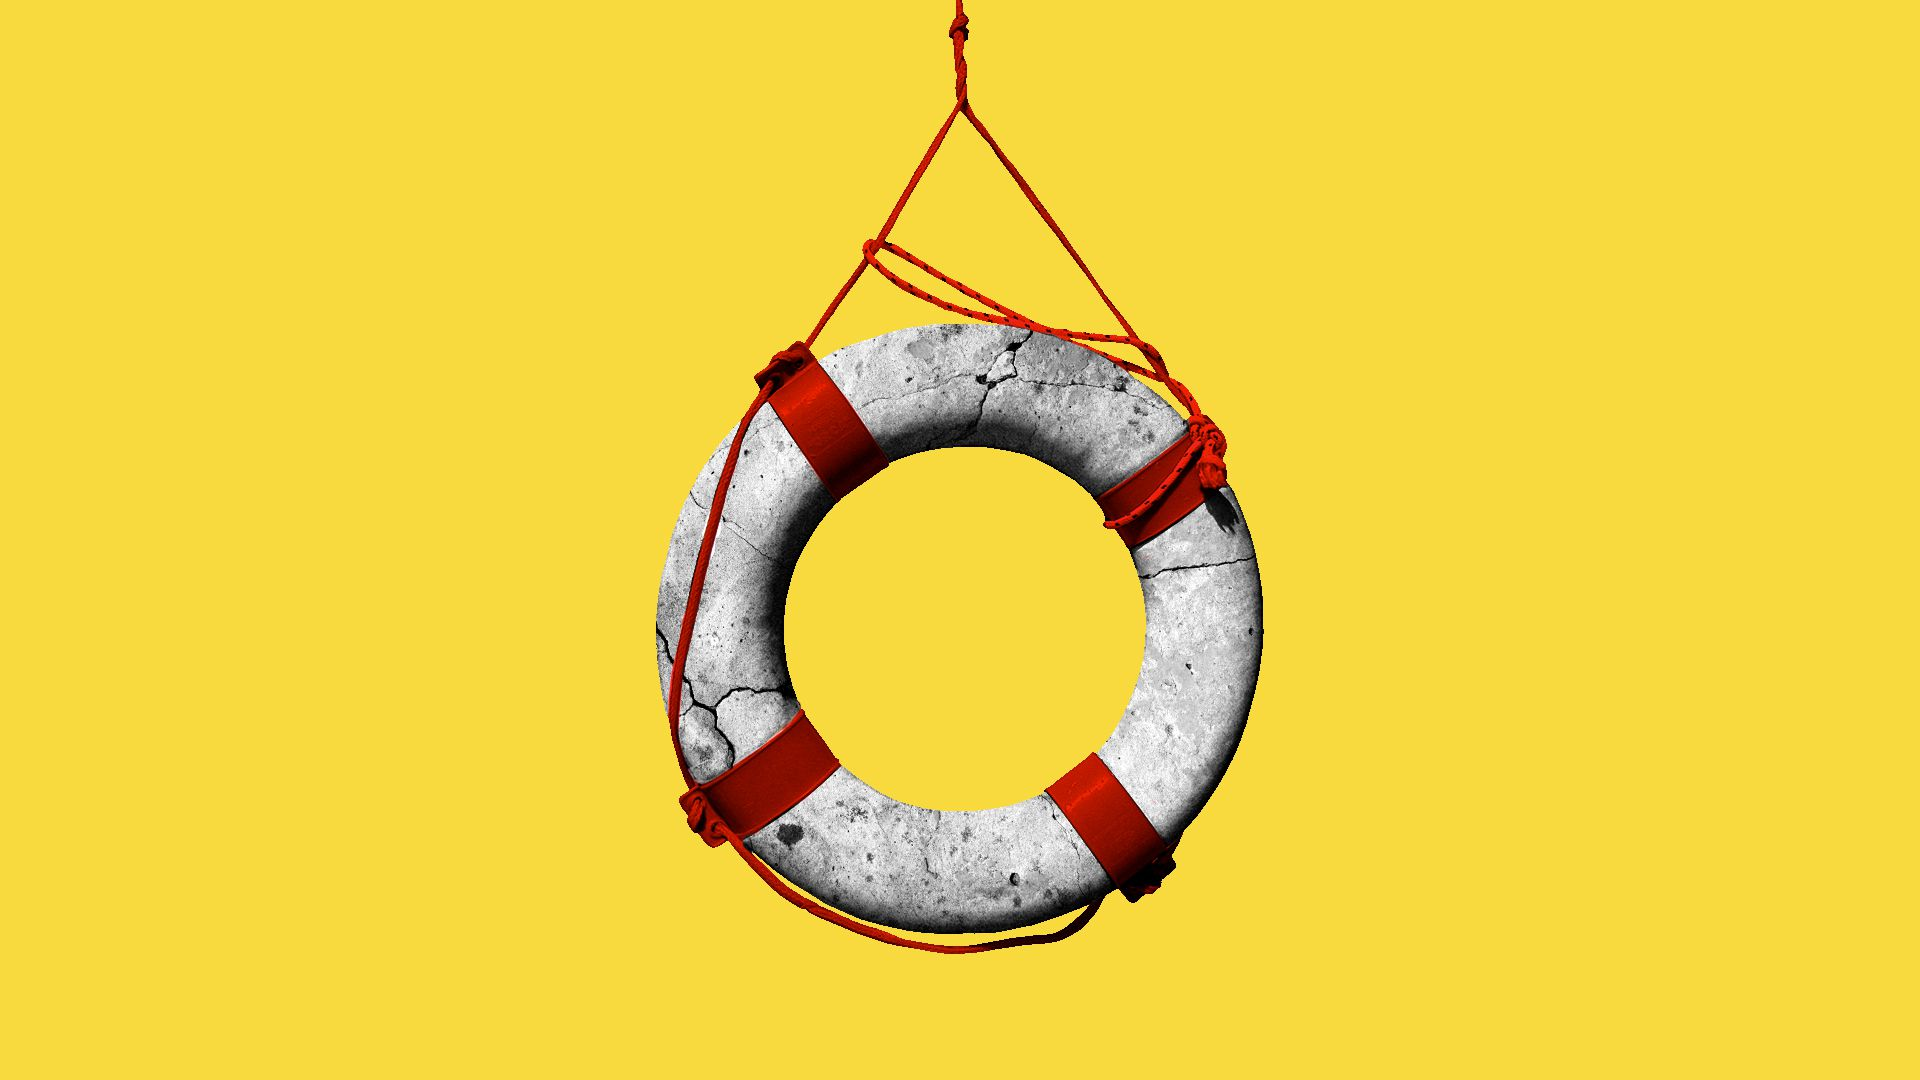 Illustration of a life preserver made from stone.